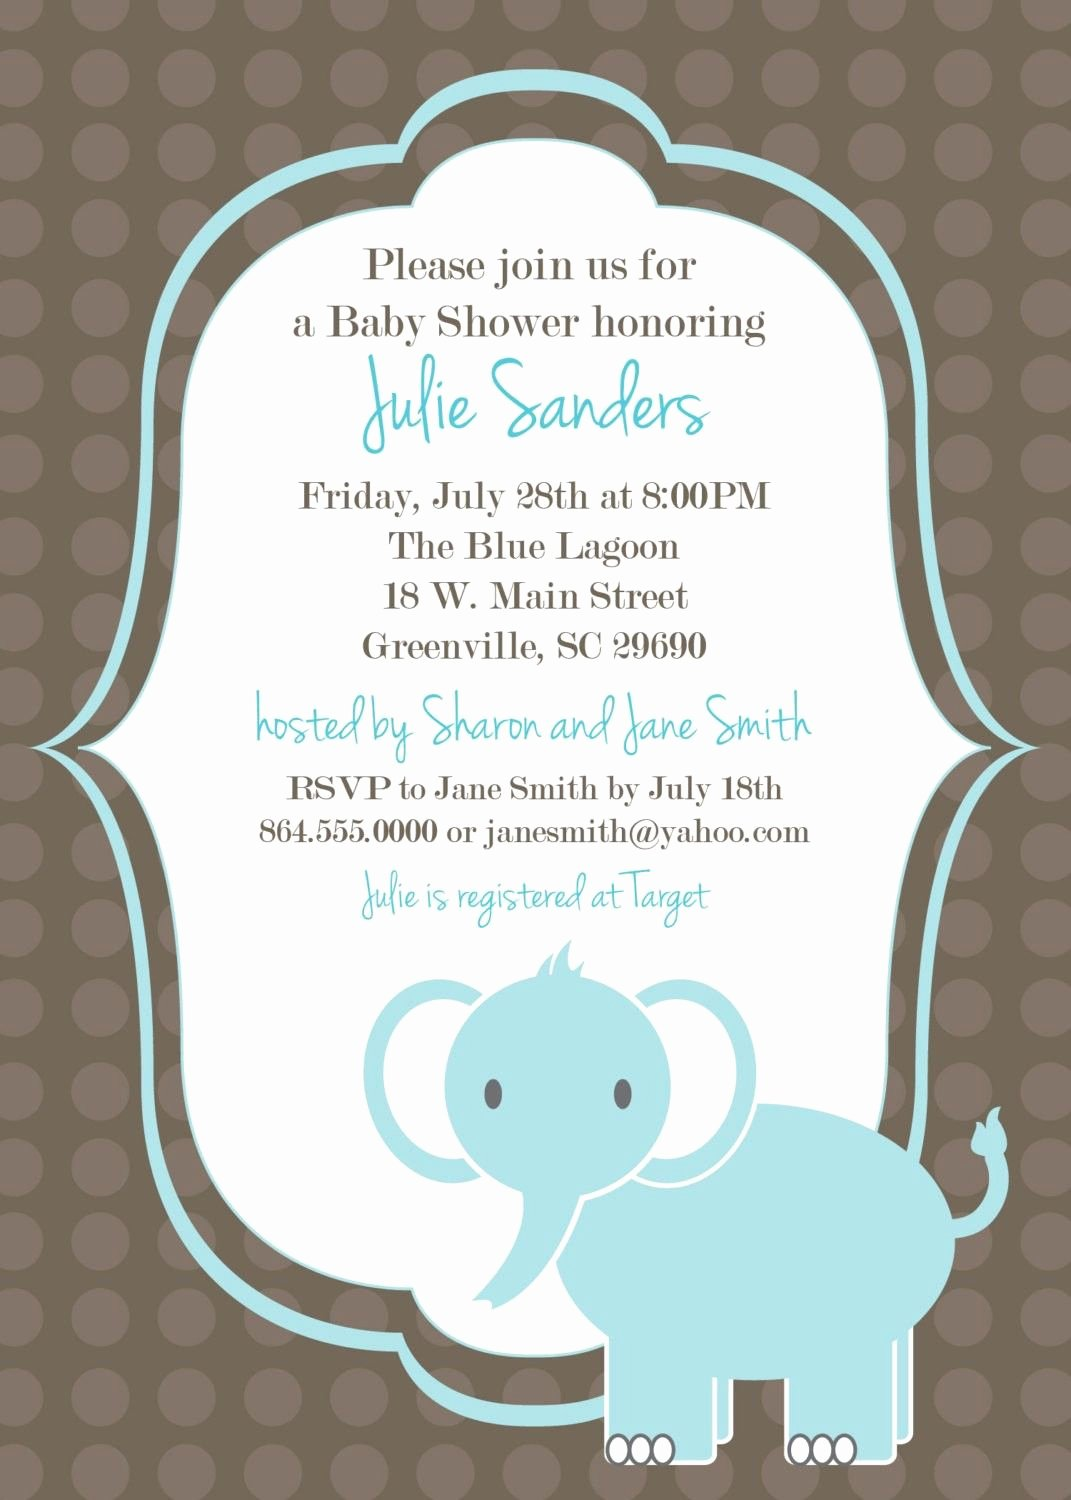 Baby Shower Invitation Template Free New Download Free Template Got the Free Baby Shower